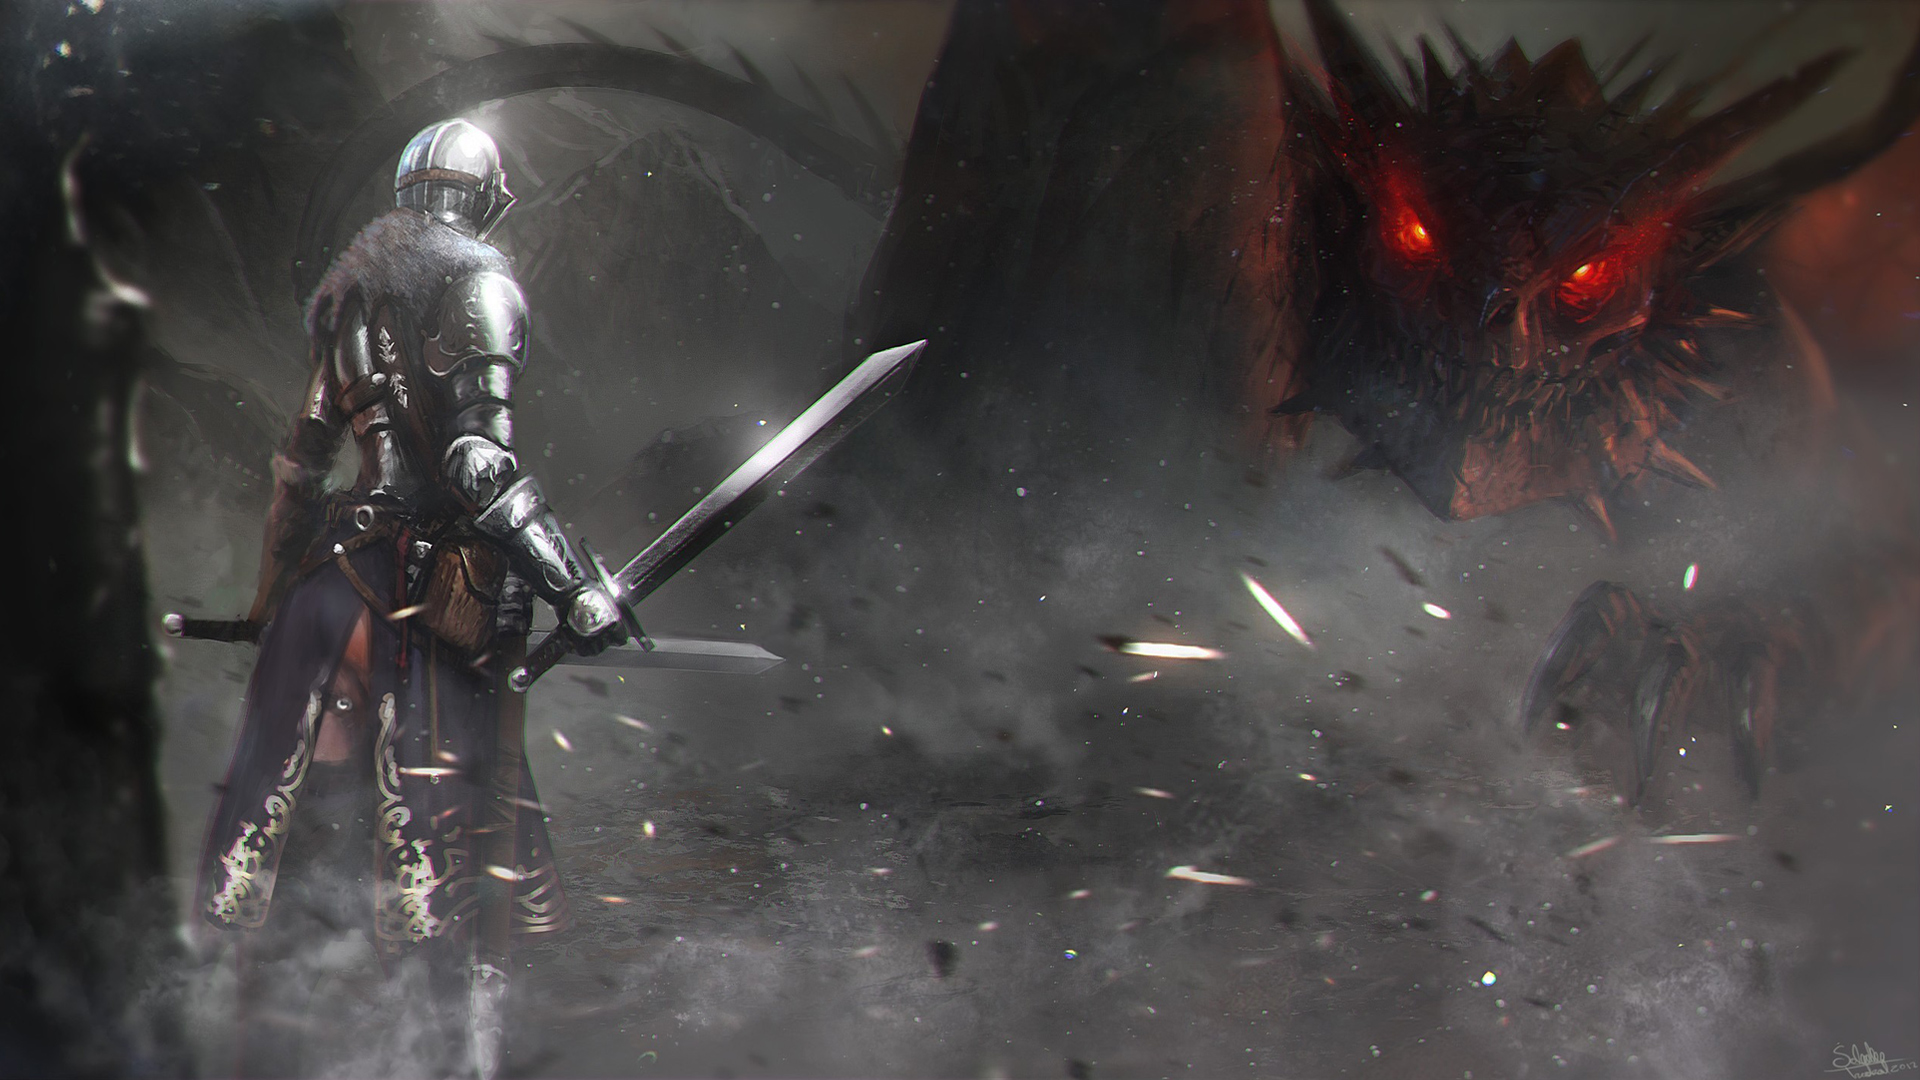 dark souls 2 II game dragon knight hd wallpaper image picture 1920x1080